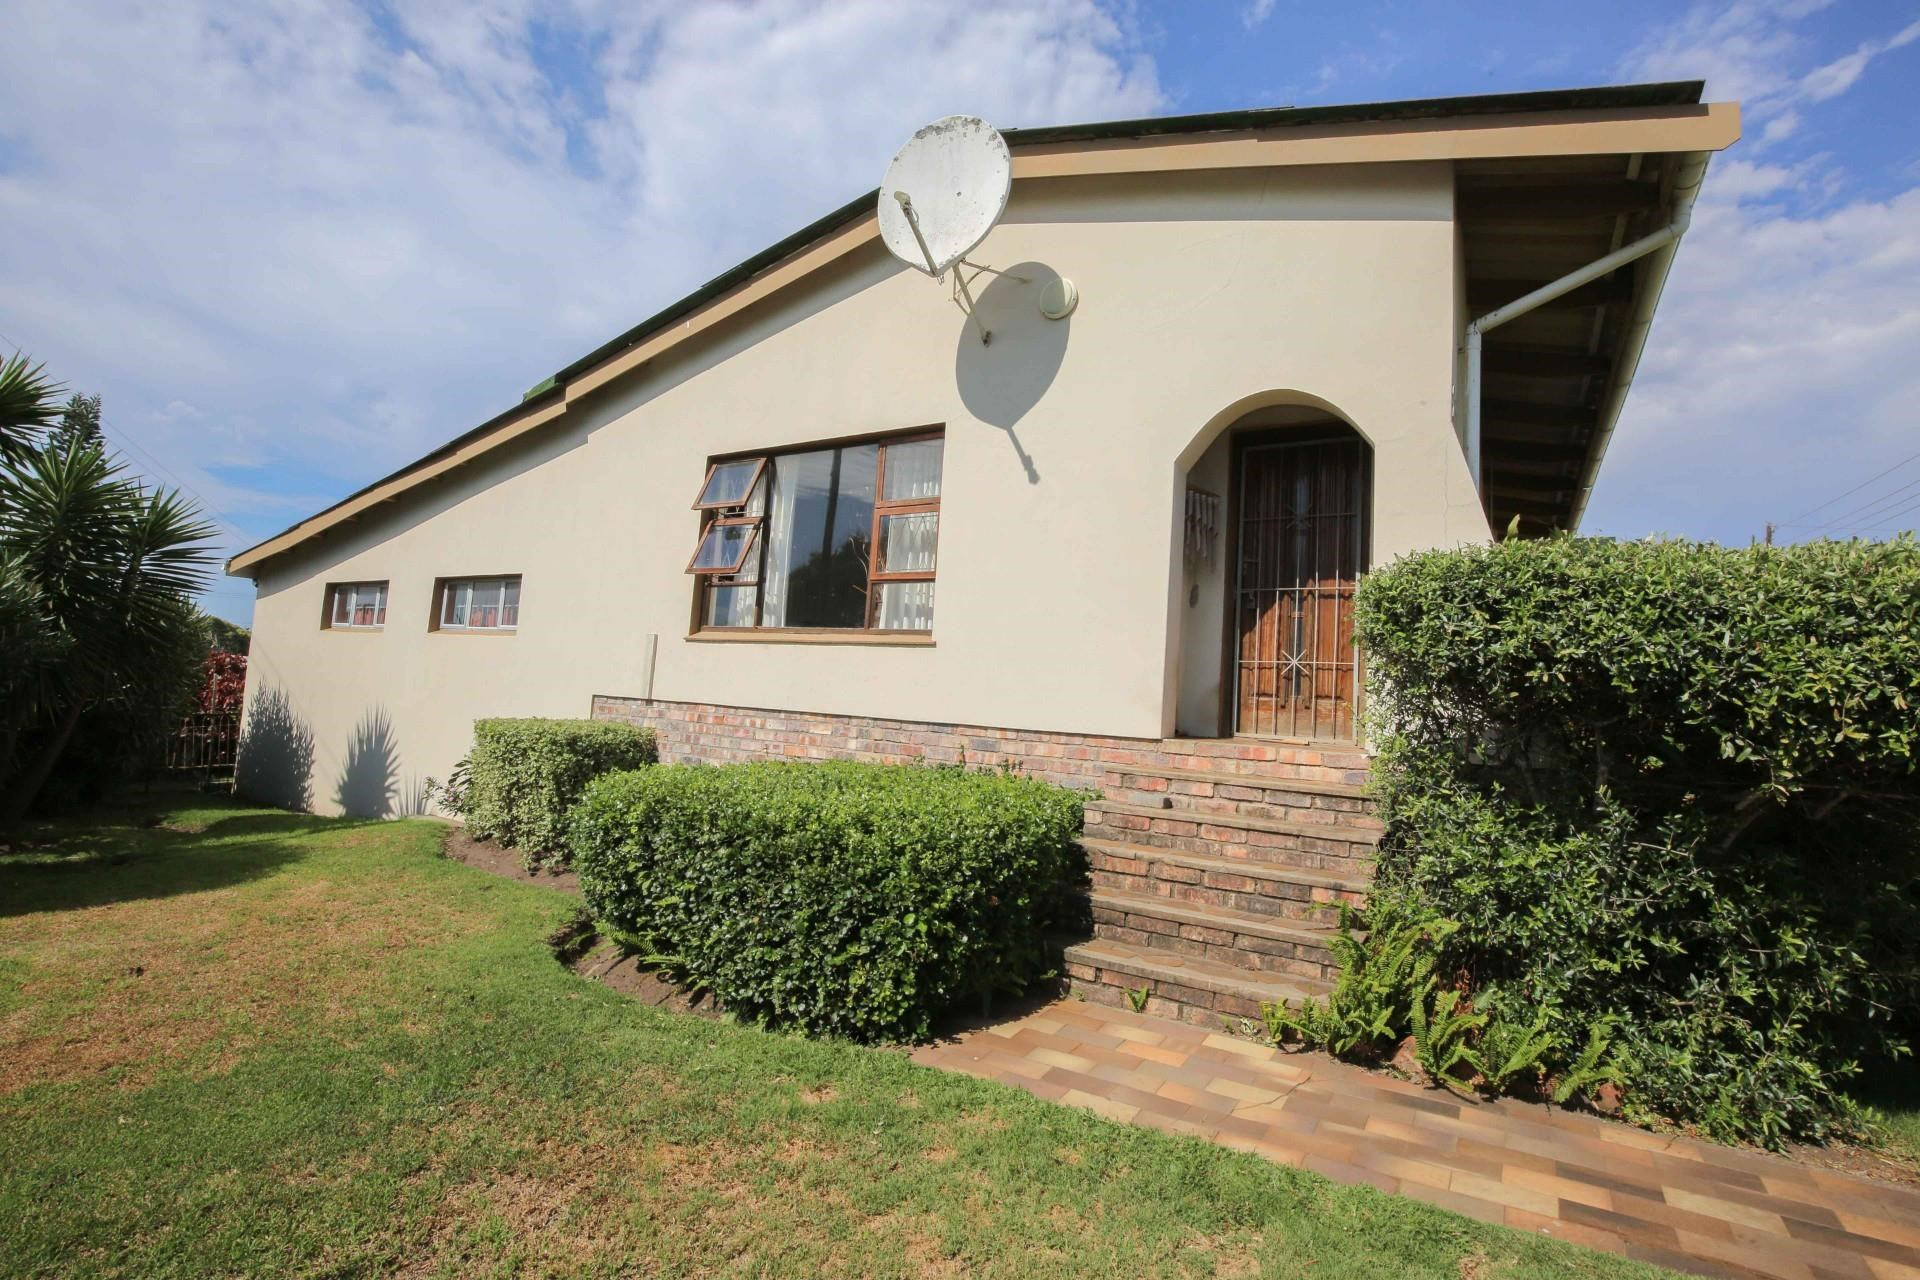 3 Bedroom House for Sale in Gonubie